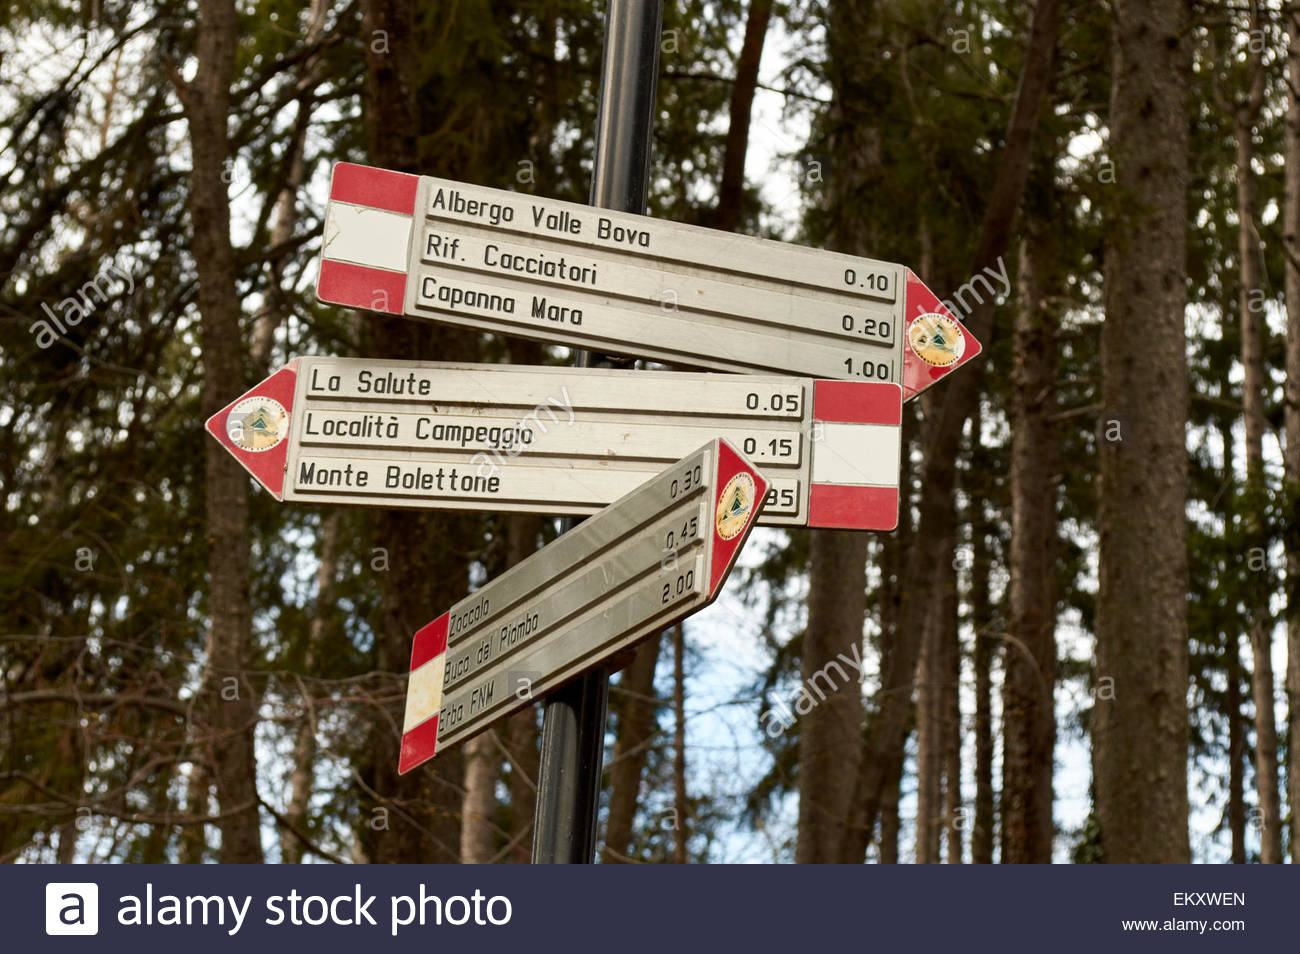 Indication signals for hikers in the woods of the Prealps in province of Como Lombardy region Italy - Stock Image